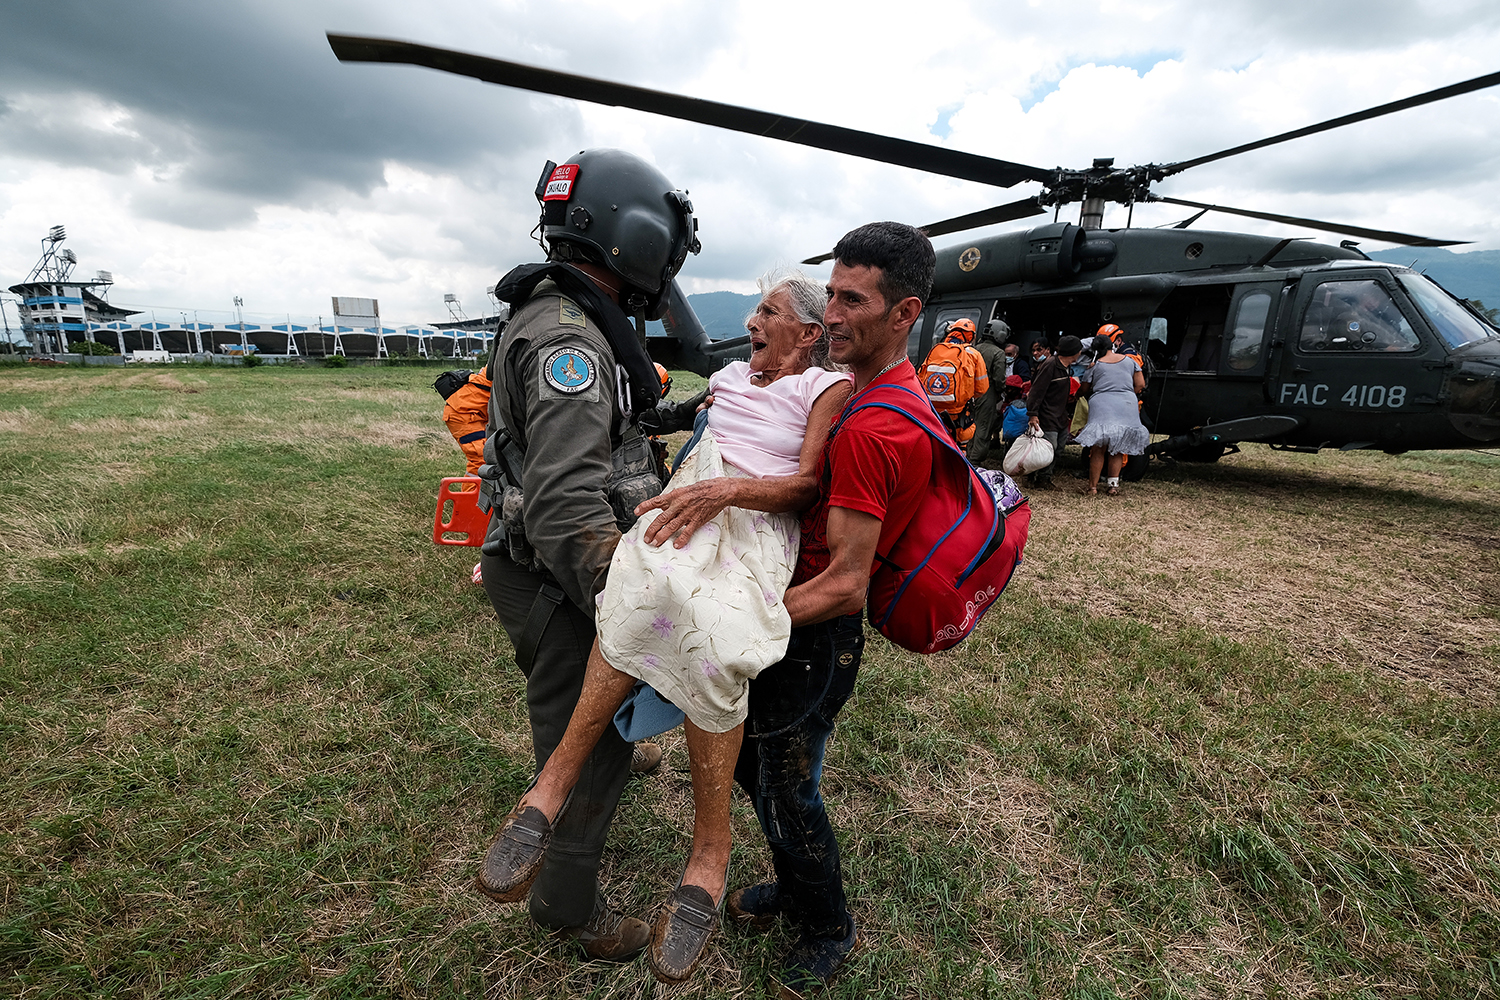 A woman rescued from floods is helped off a helicopter in San Pedro Sula, Honduras, on Nov. 20. After hitting the Colombian islands of Providencia and San Andres, Hurricane Iota made landfall in Haulover, Nicaragua, as a Category 4 storm and then tore through Honduras and El Salvador, causing landslides and floods and destroying trees and houses. Yoseph Amaya/Getty Images